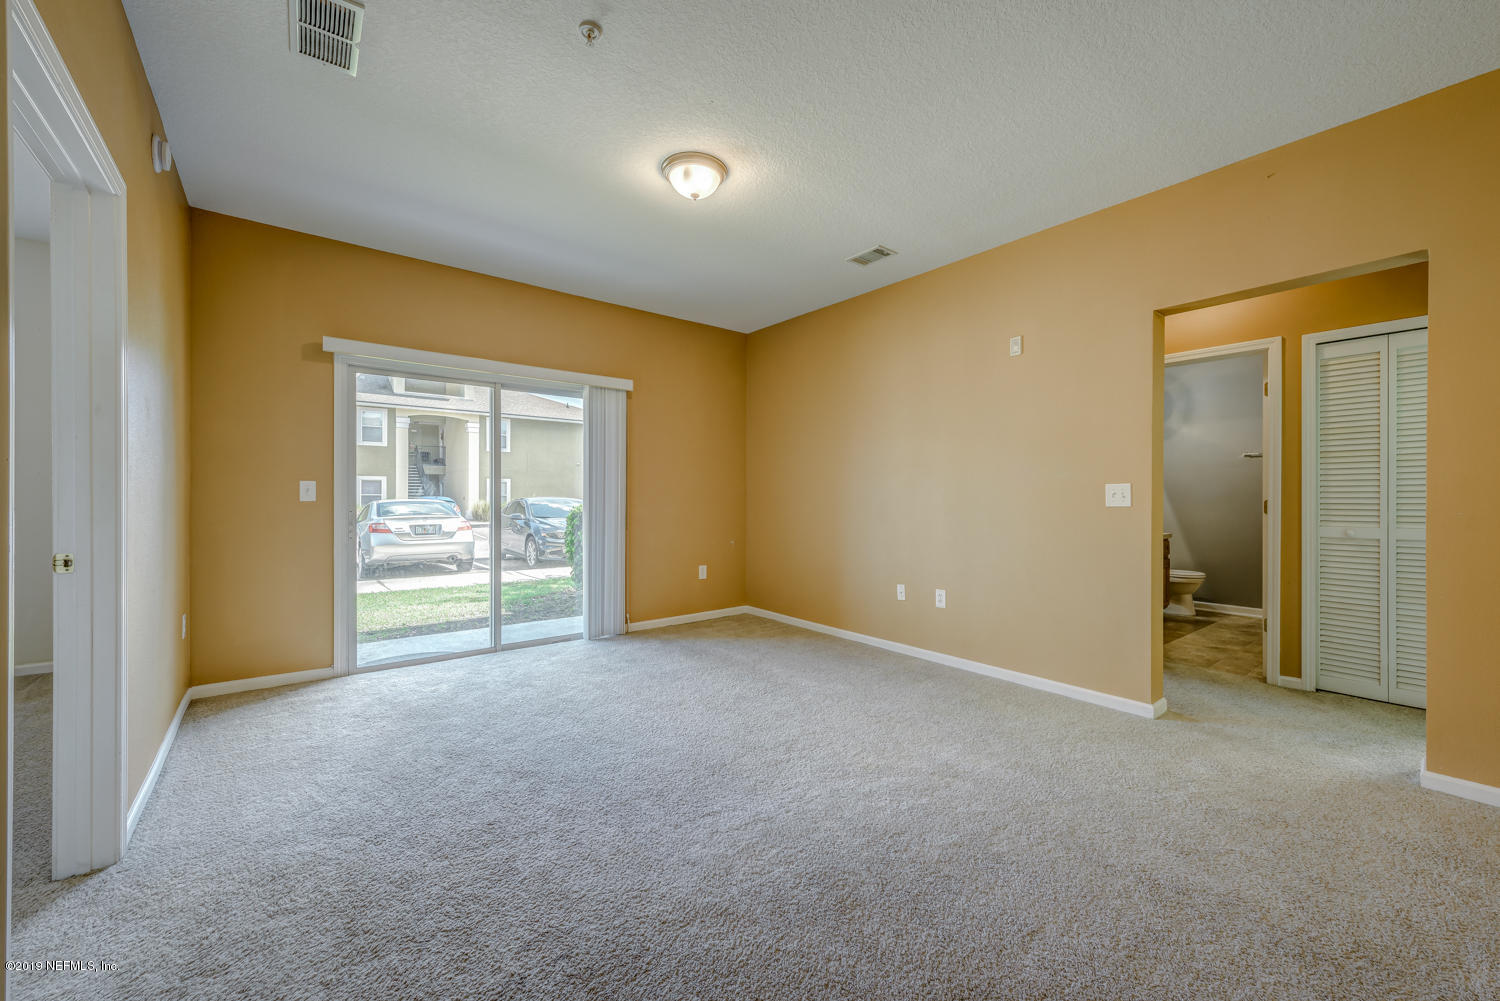 6860 SKAFF- JACKSONVILLE- FLORIDA 32244, 3 Bedrooms Bedrooms, ,2 BathroomsBathrooms,Condo,For sale,SKAFF,1005495